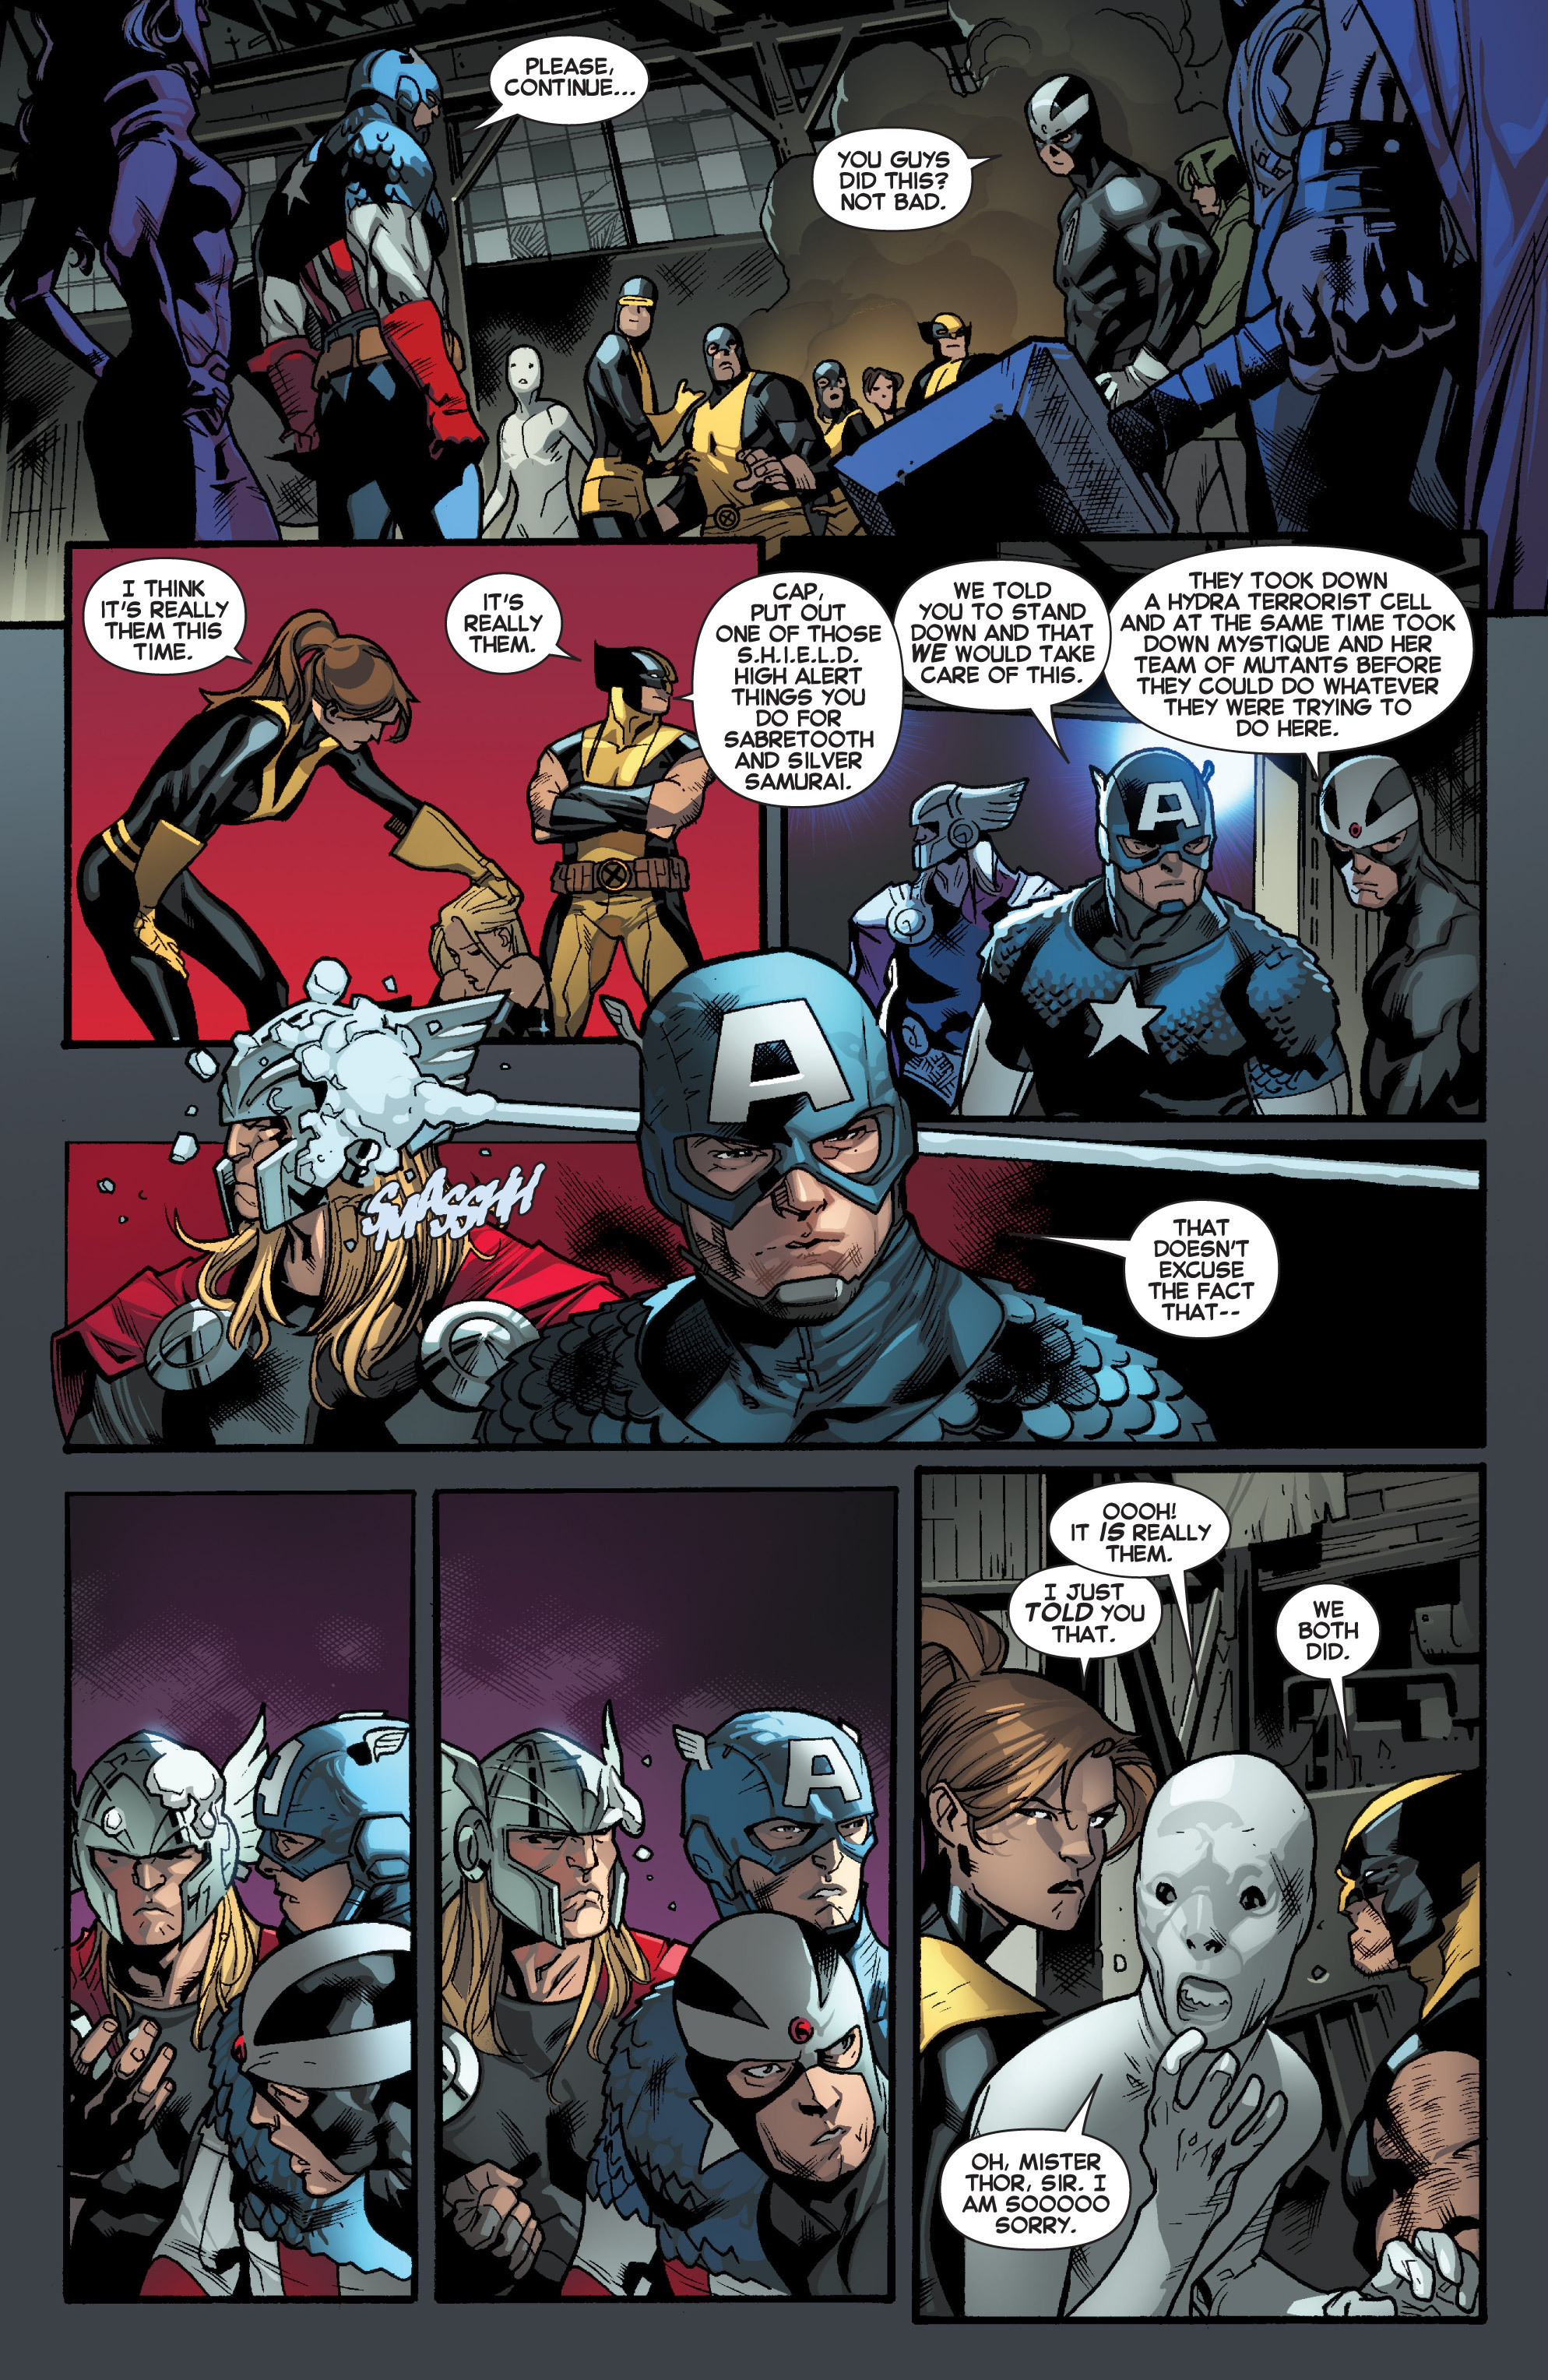 Read online All-New X-Men (2013) comic -  Issue # _Special - Out Of Their Depth - 83